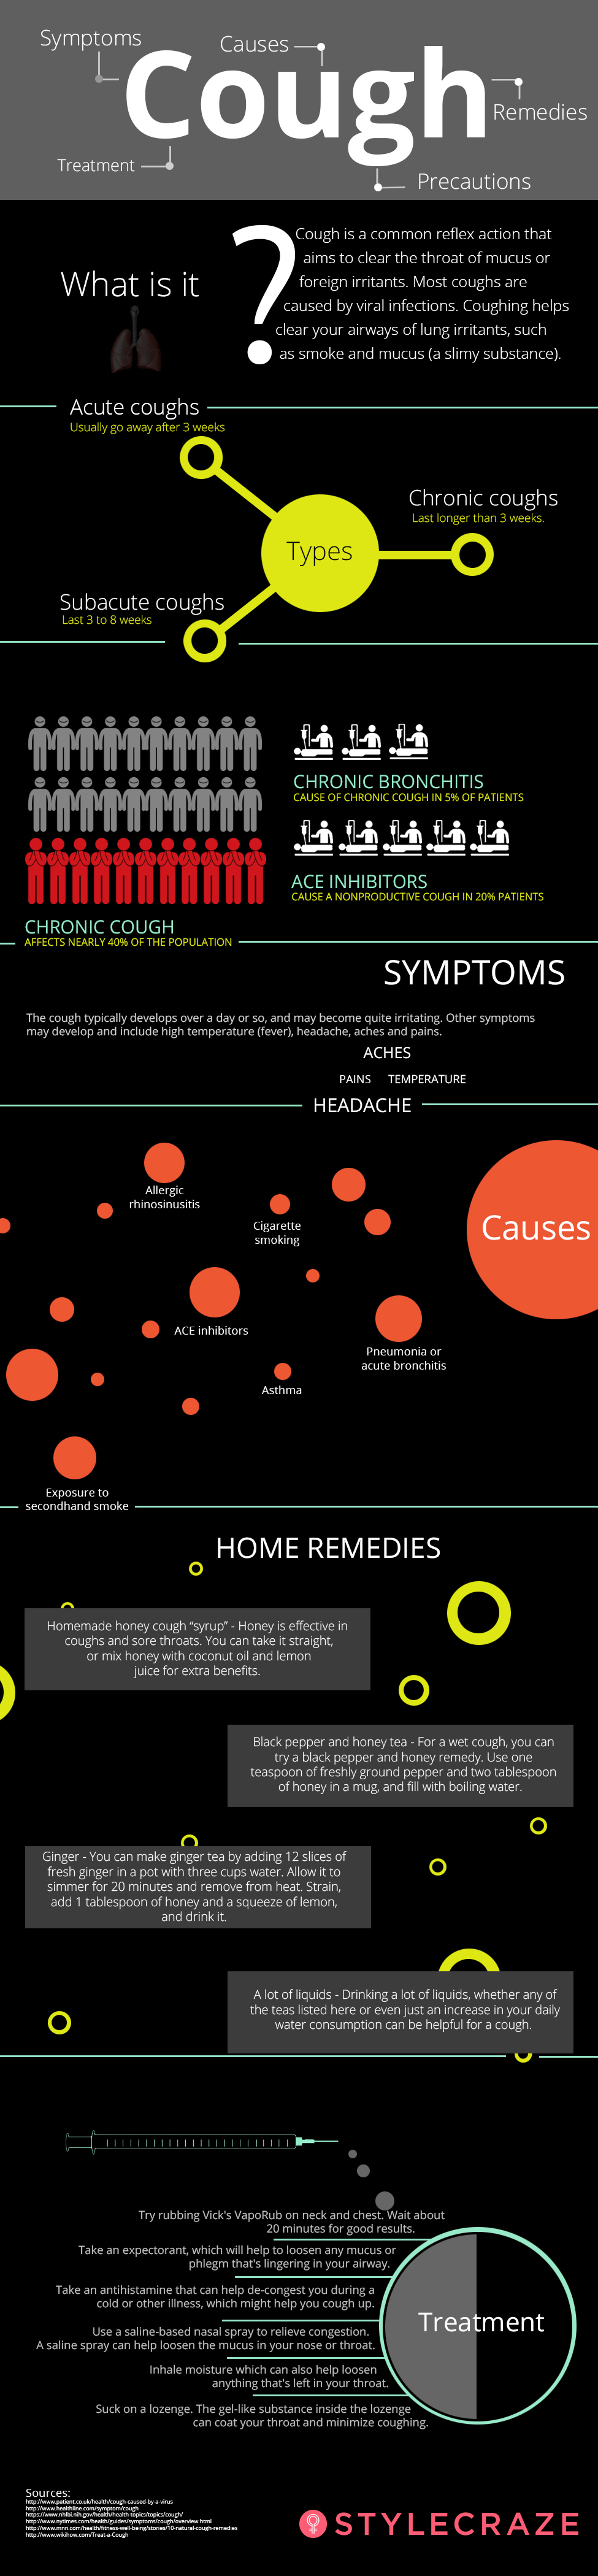 Home Remedies To Get Rid Of Cough Without Medicine